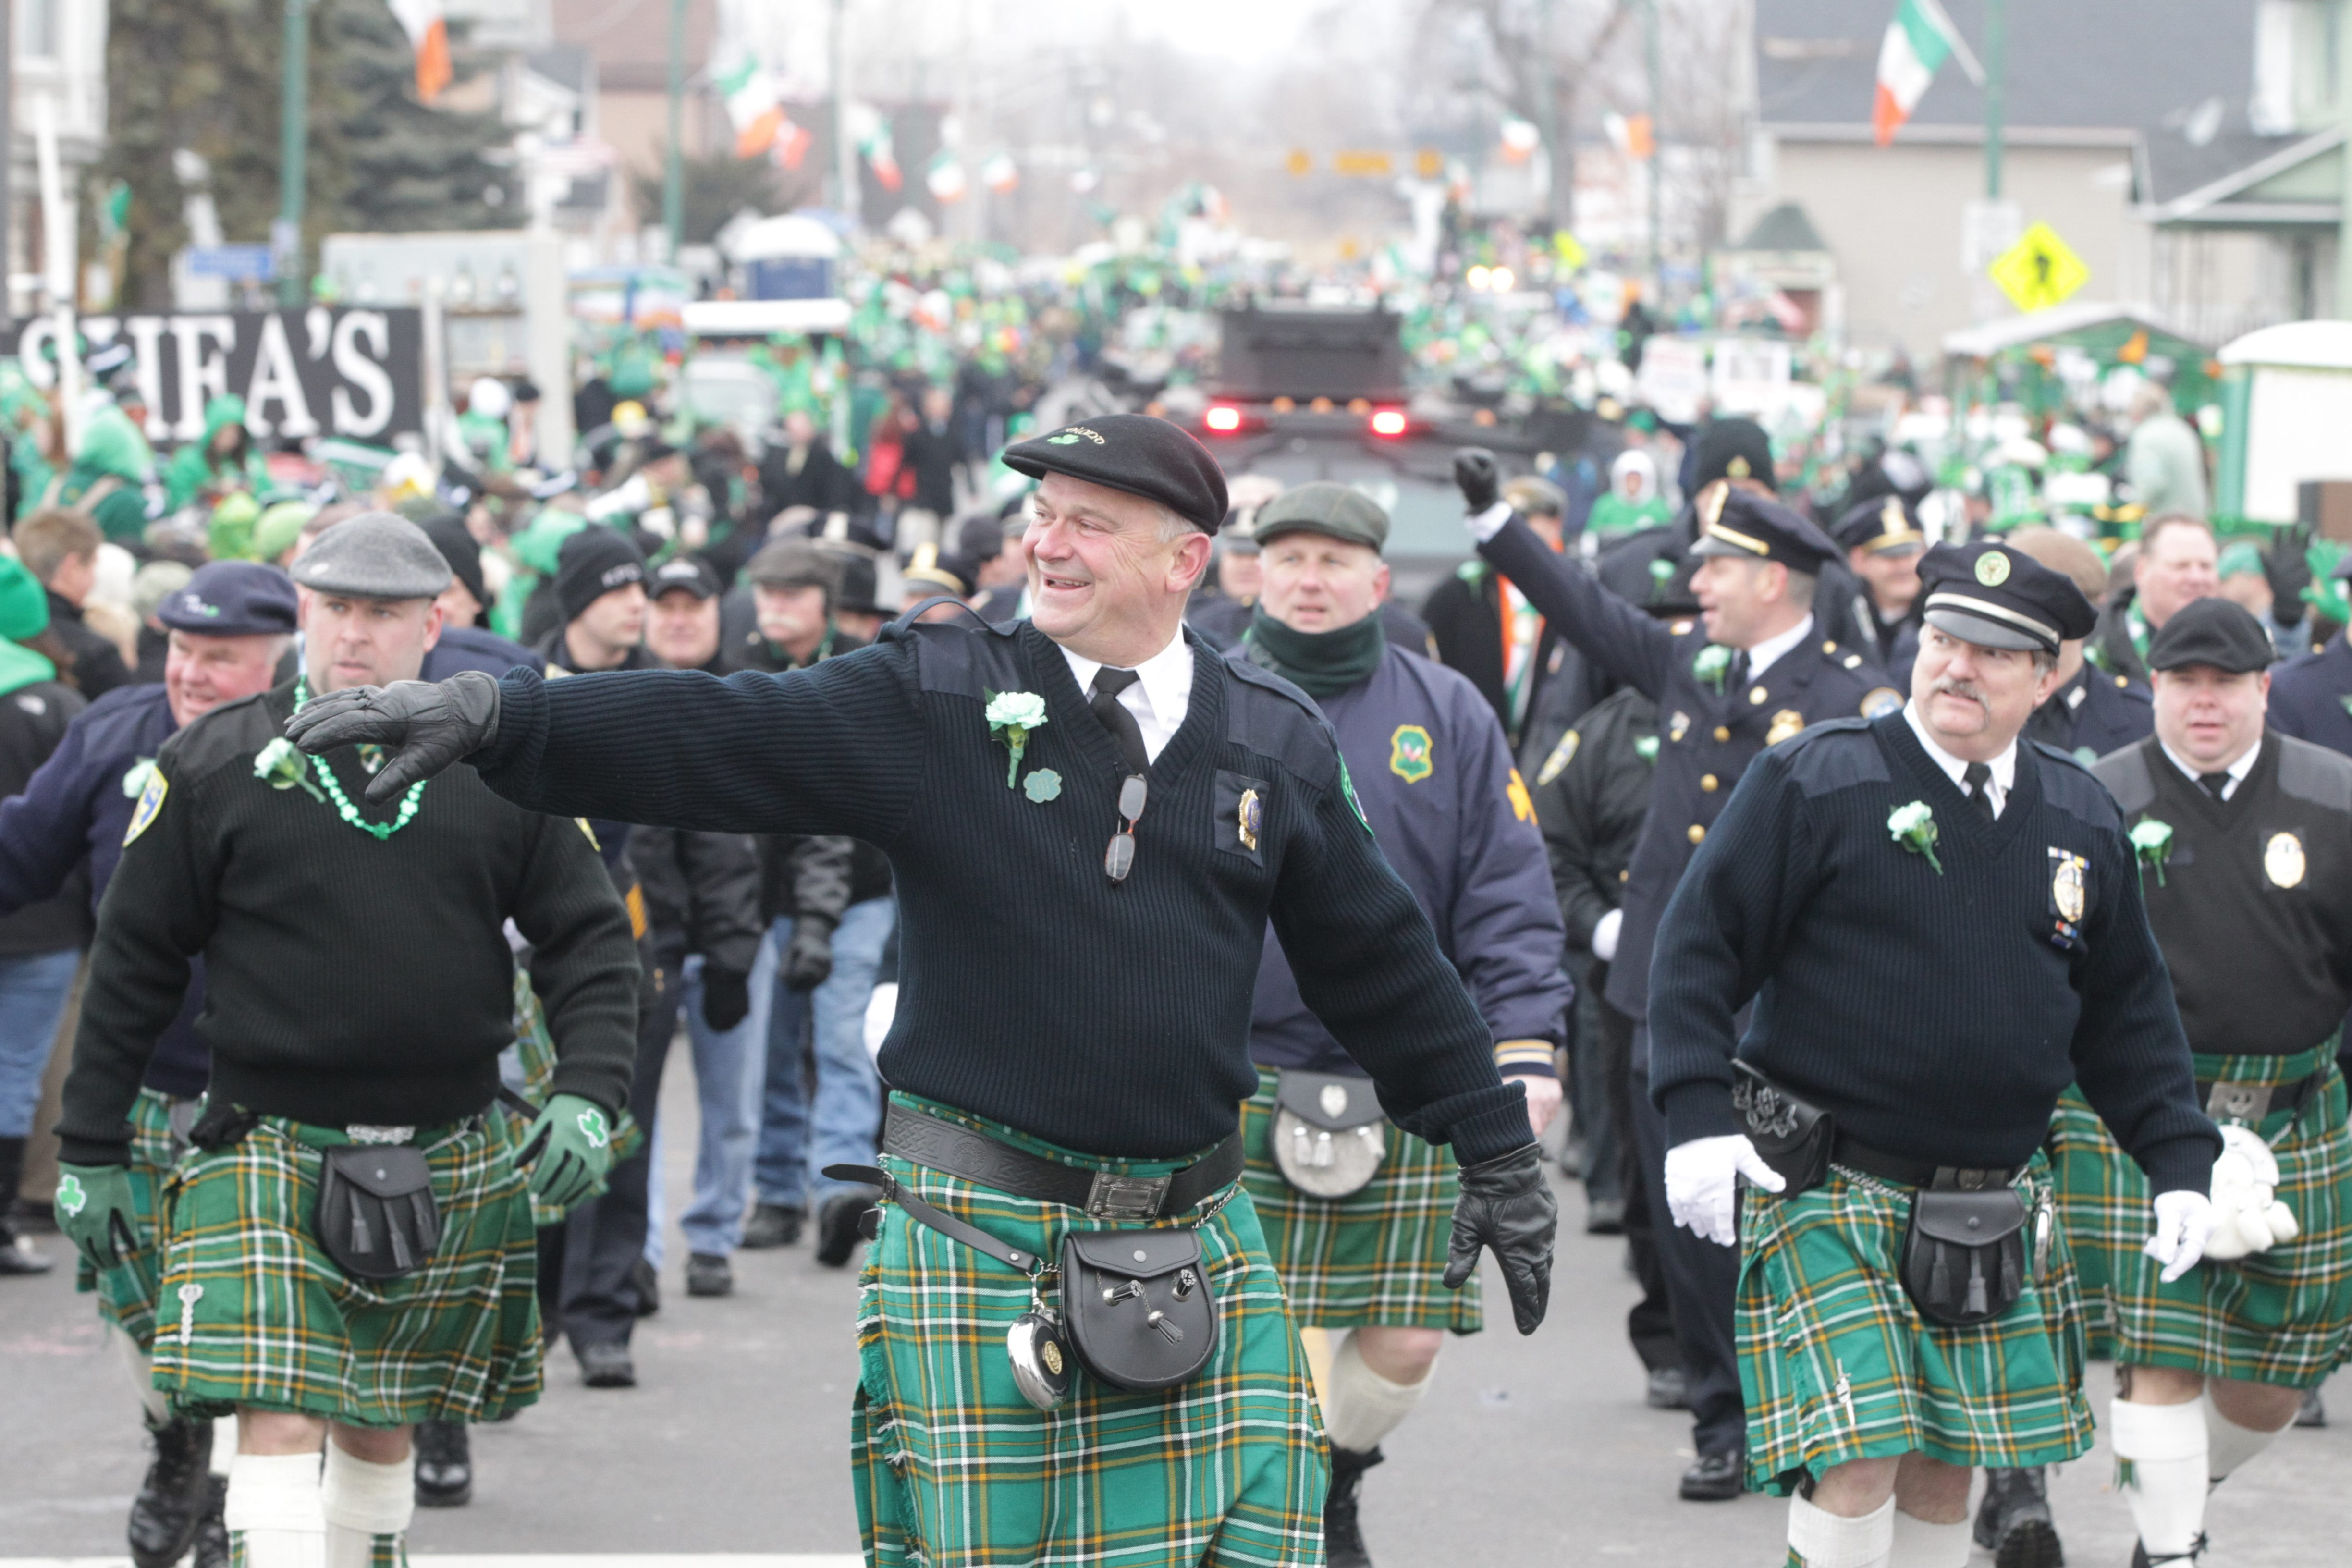 The Old First Ward is awash in all shades of green – and plenty of plaid – Saturday as thousands enjoy the Old Neighborhood Parade.